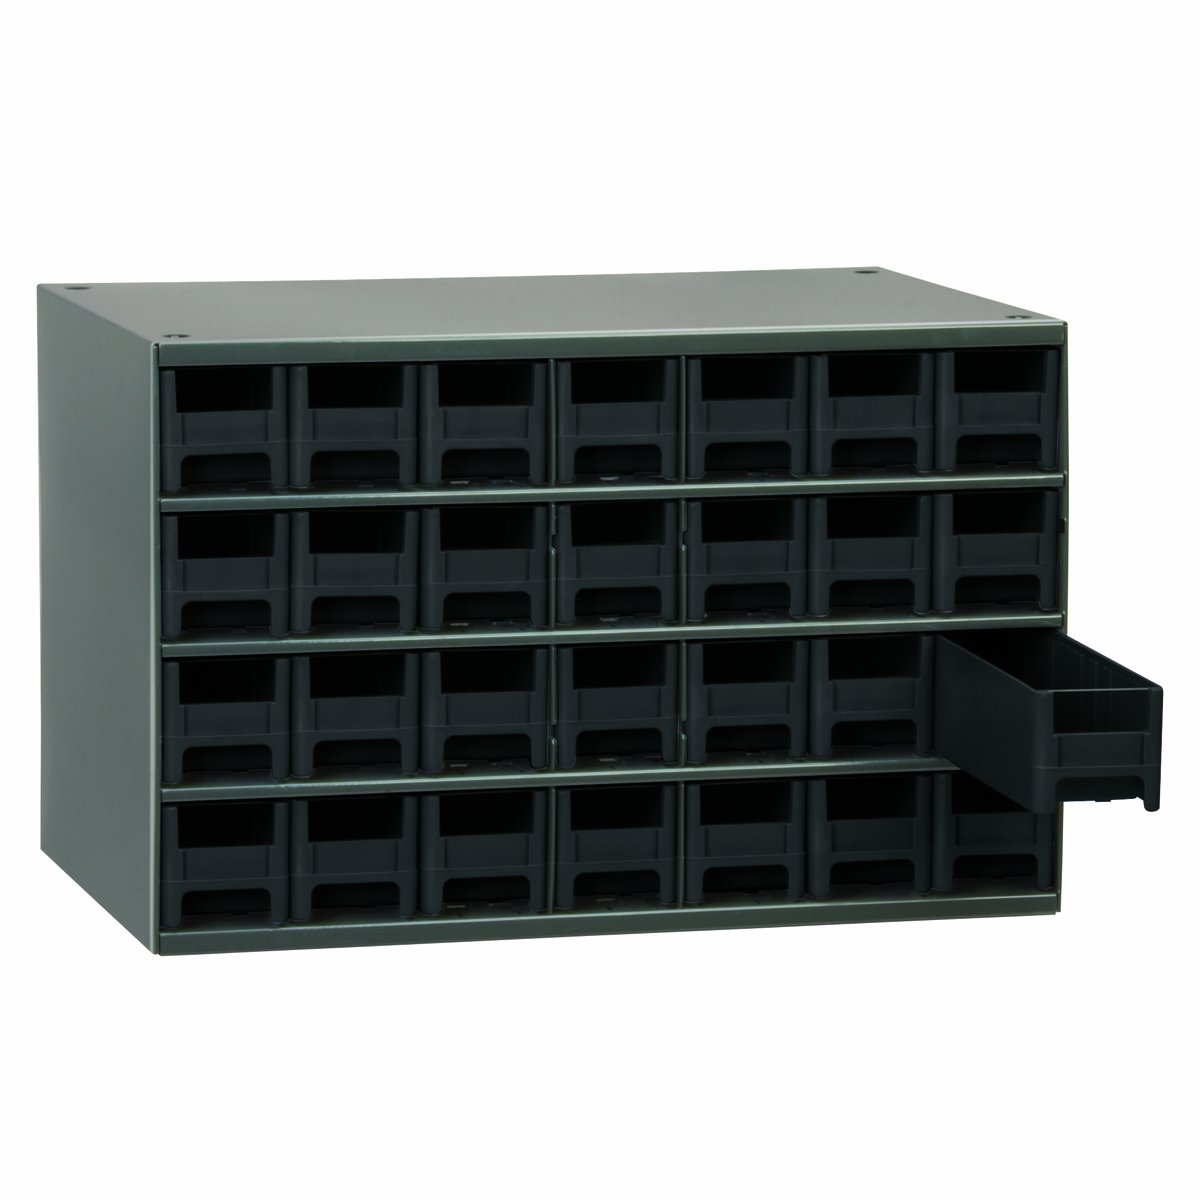 Akro-Mils 19228 17-Inch W by 11-Inch H by 11-Inch D 28 Drawer Steel Parts Storage Hardware and Craft Cabinet, Black Drawers